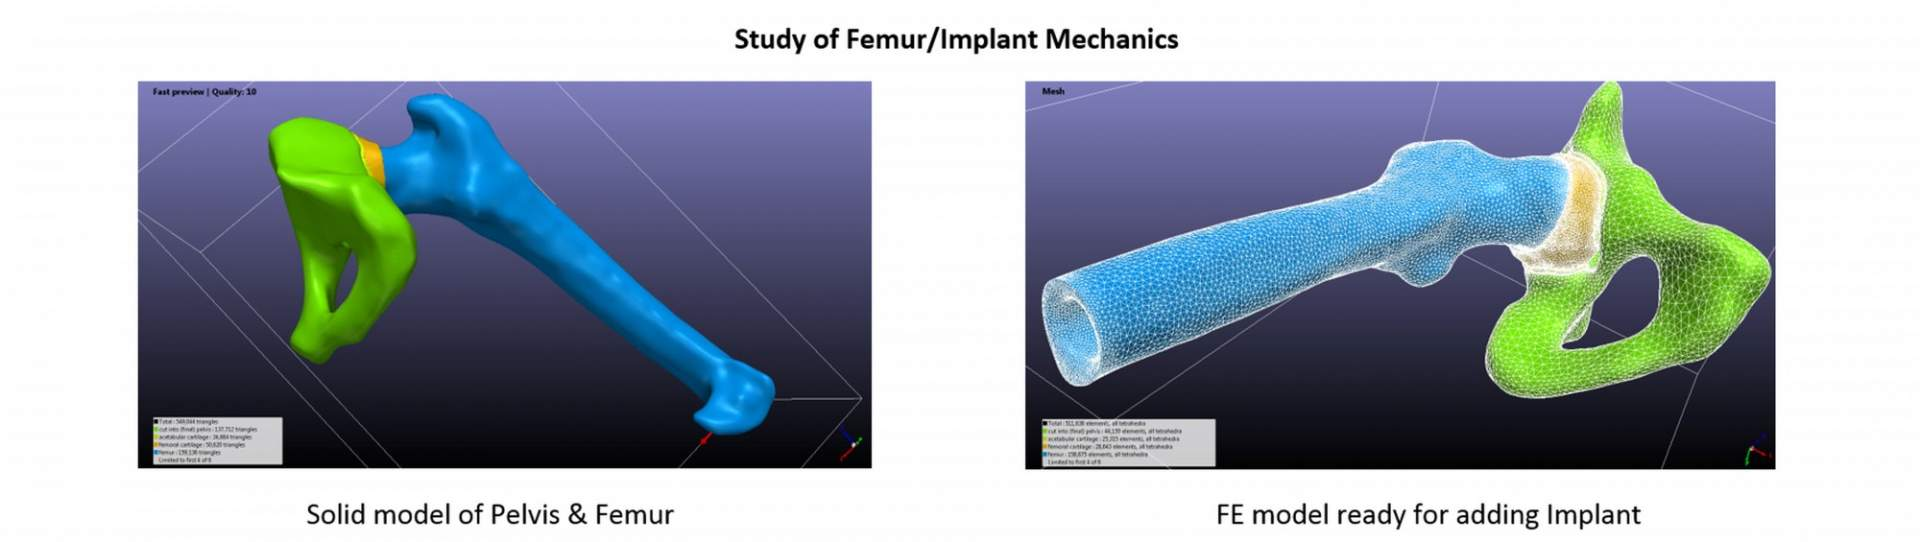 femur implant 01